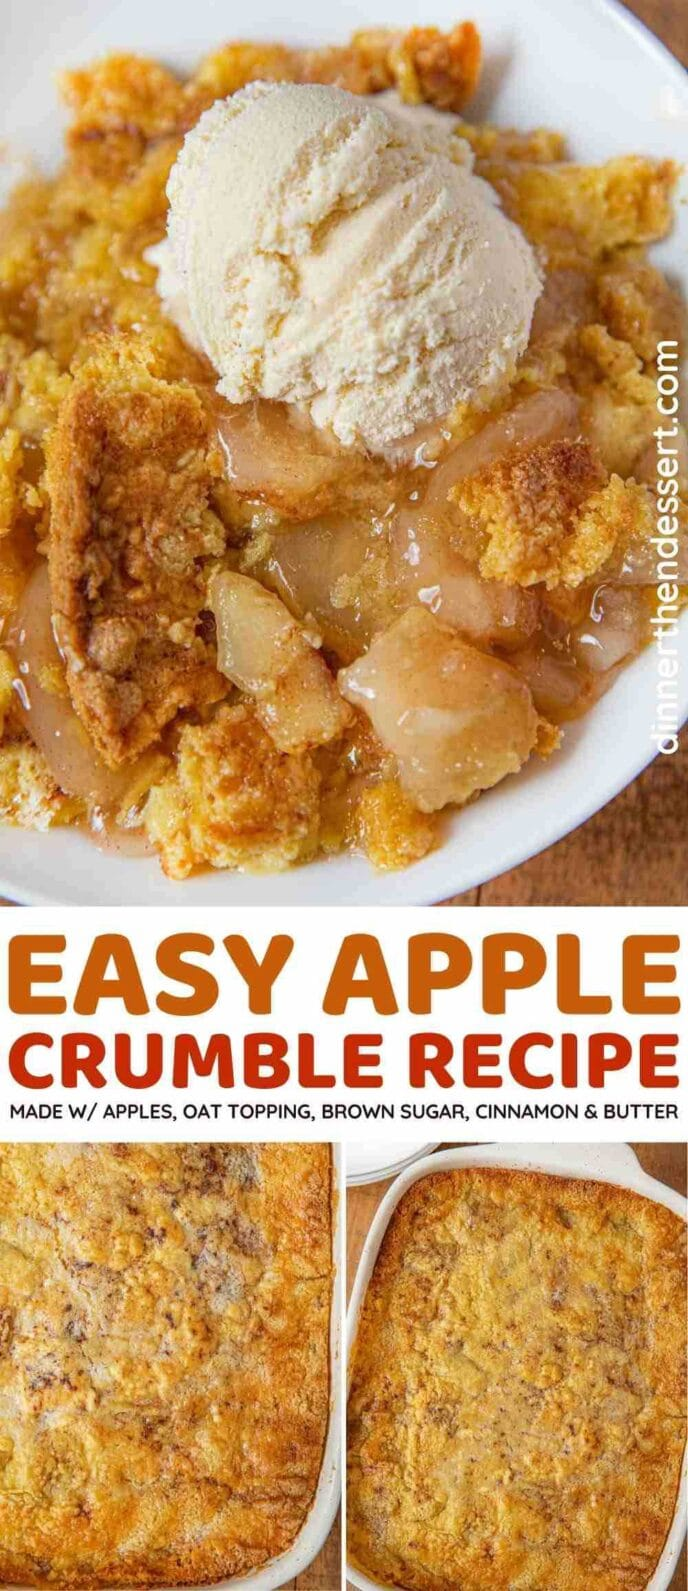 Apple Crumble collage